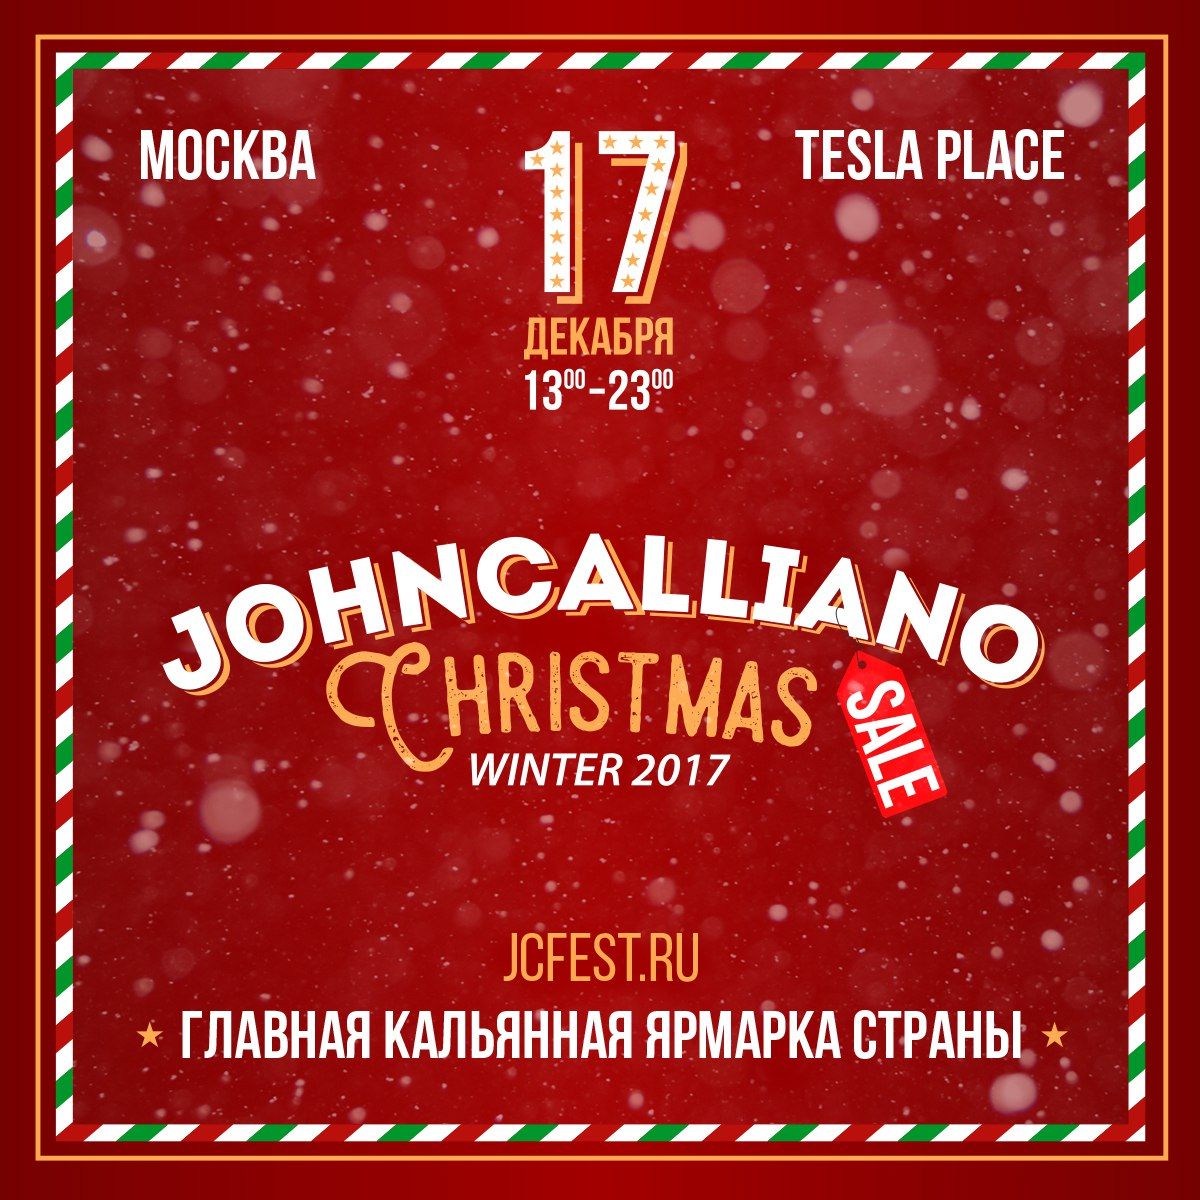 JohnCalliano Christmas Sale